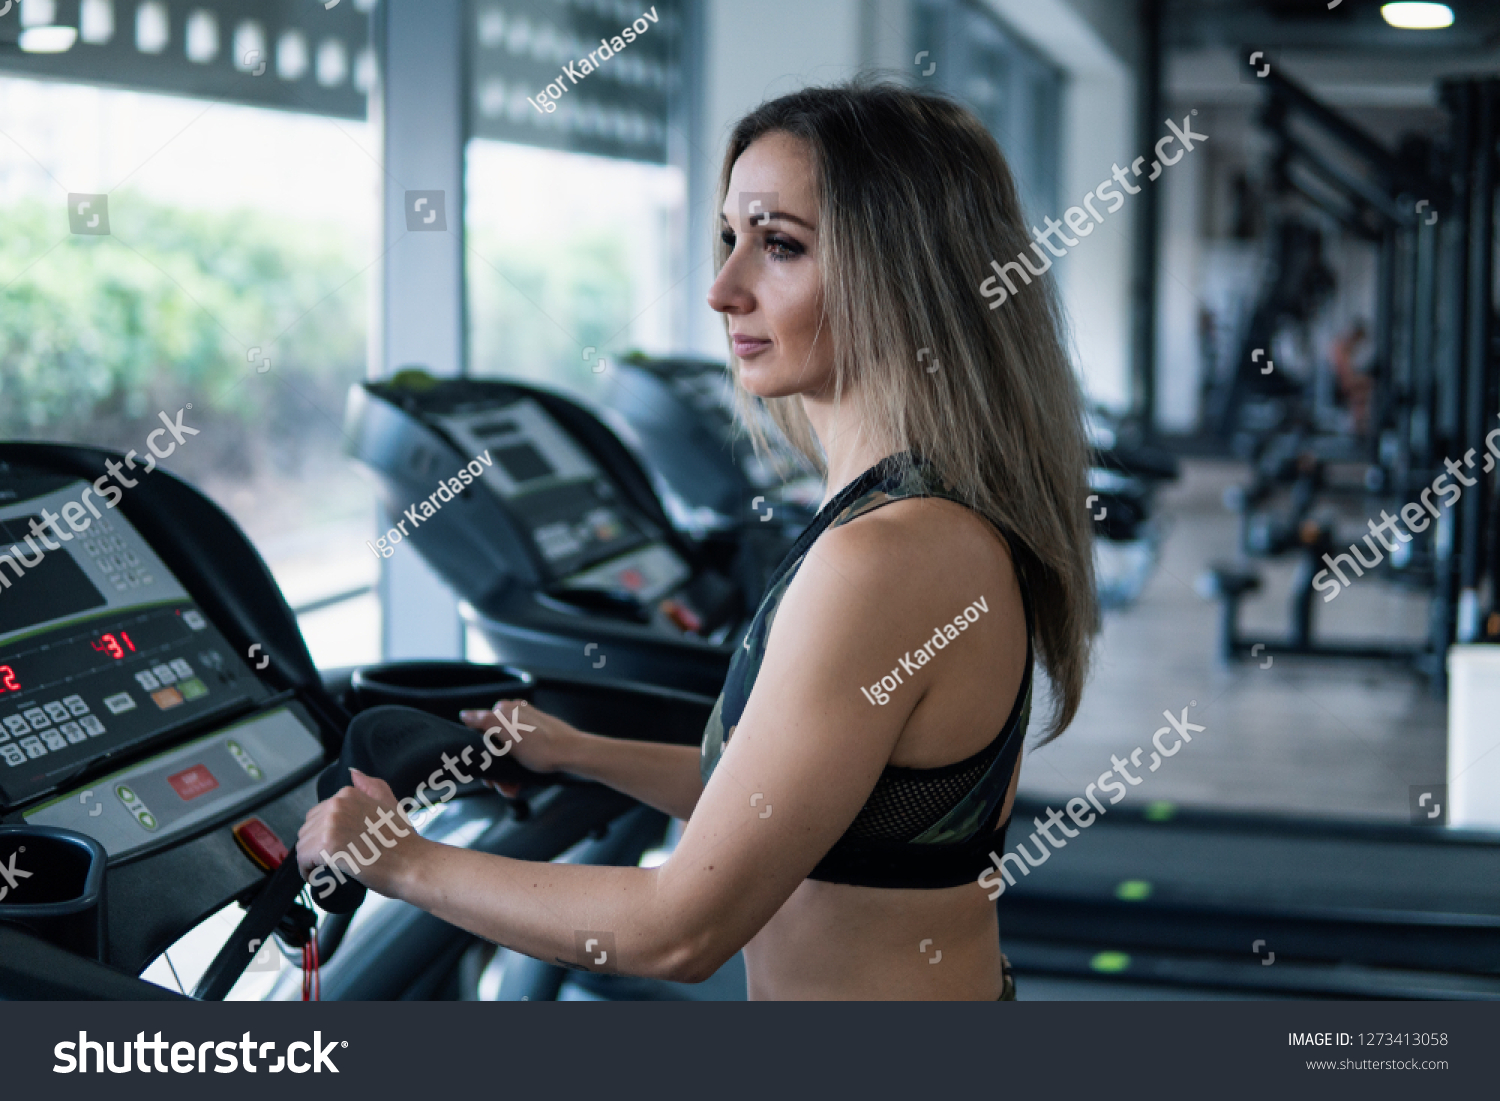 Young fit woman doing running exercise in gym at treadmill speedwalk running road. #1273413058